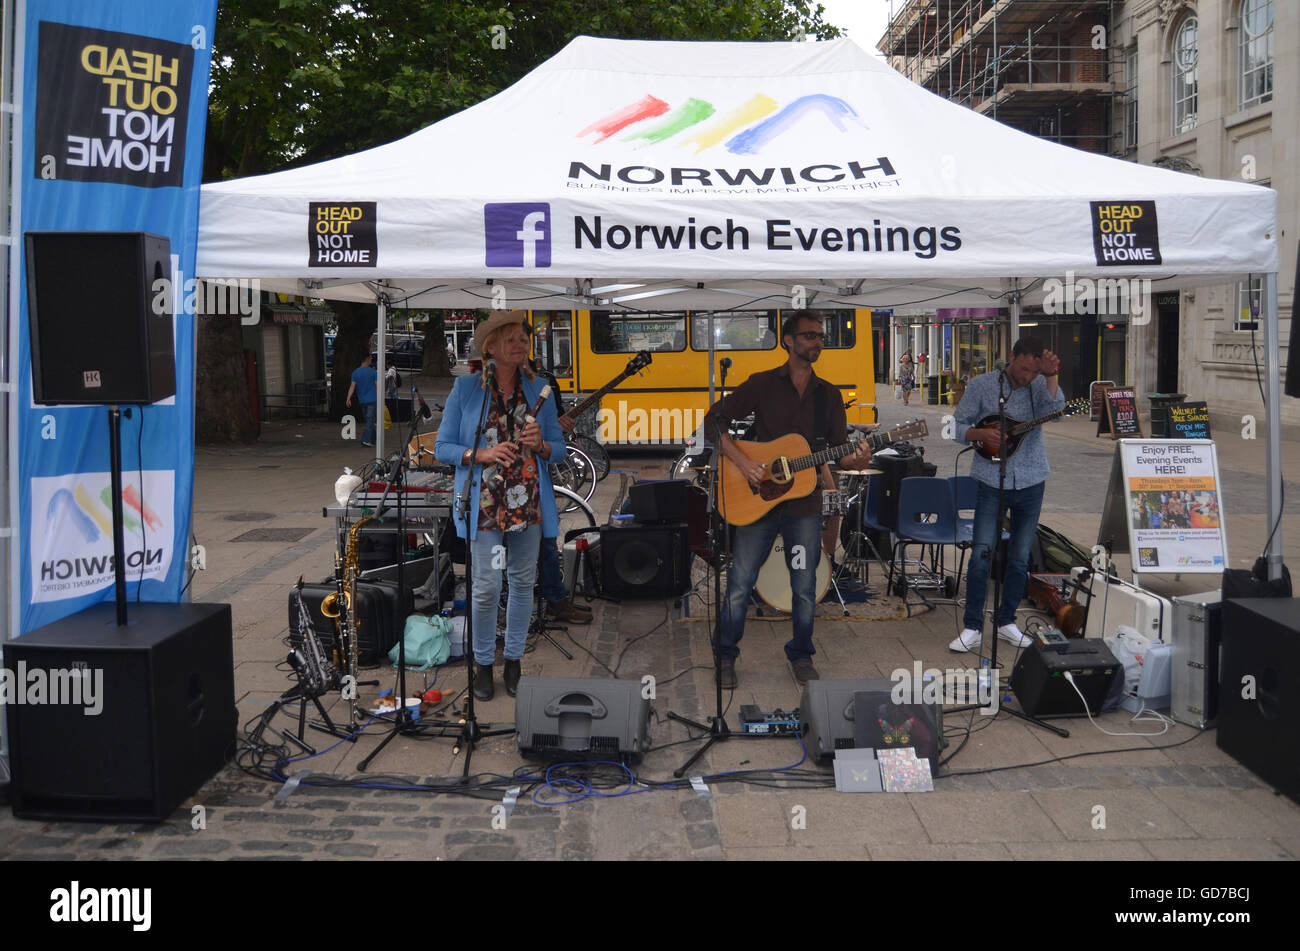 Norwich evenings, summer events held in Norwich city centre, Norfolk July 2016 - Stock Image